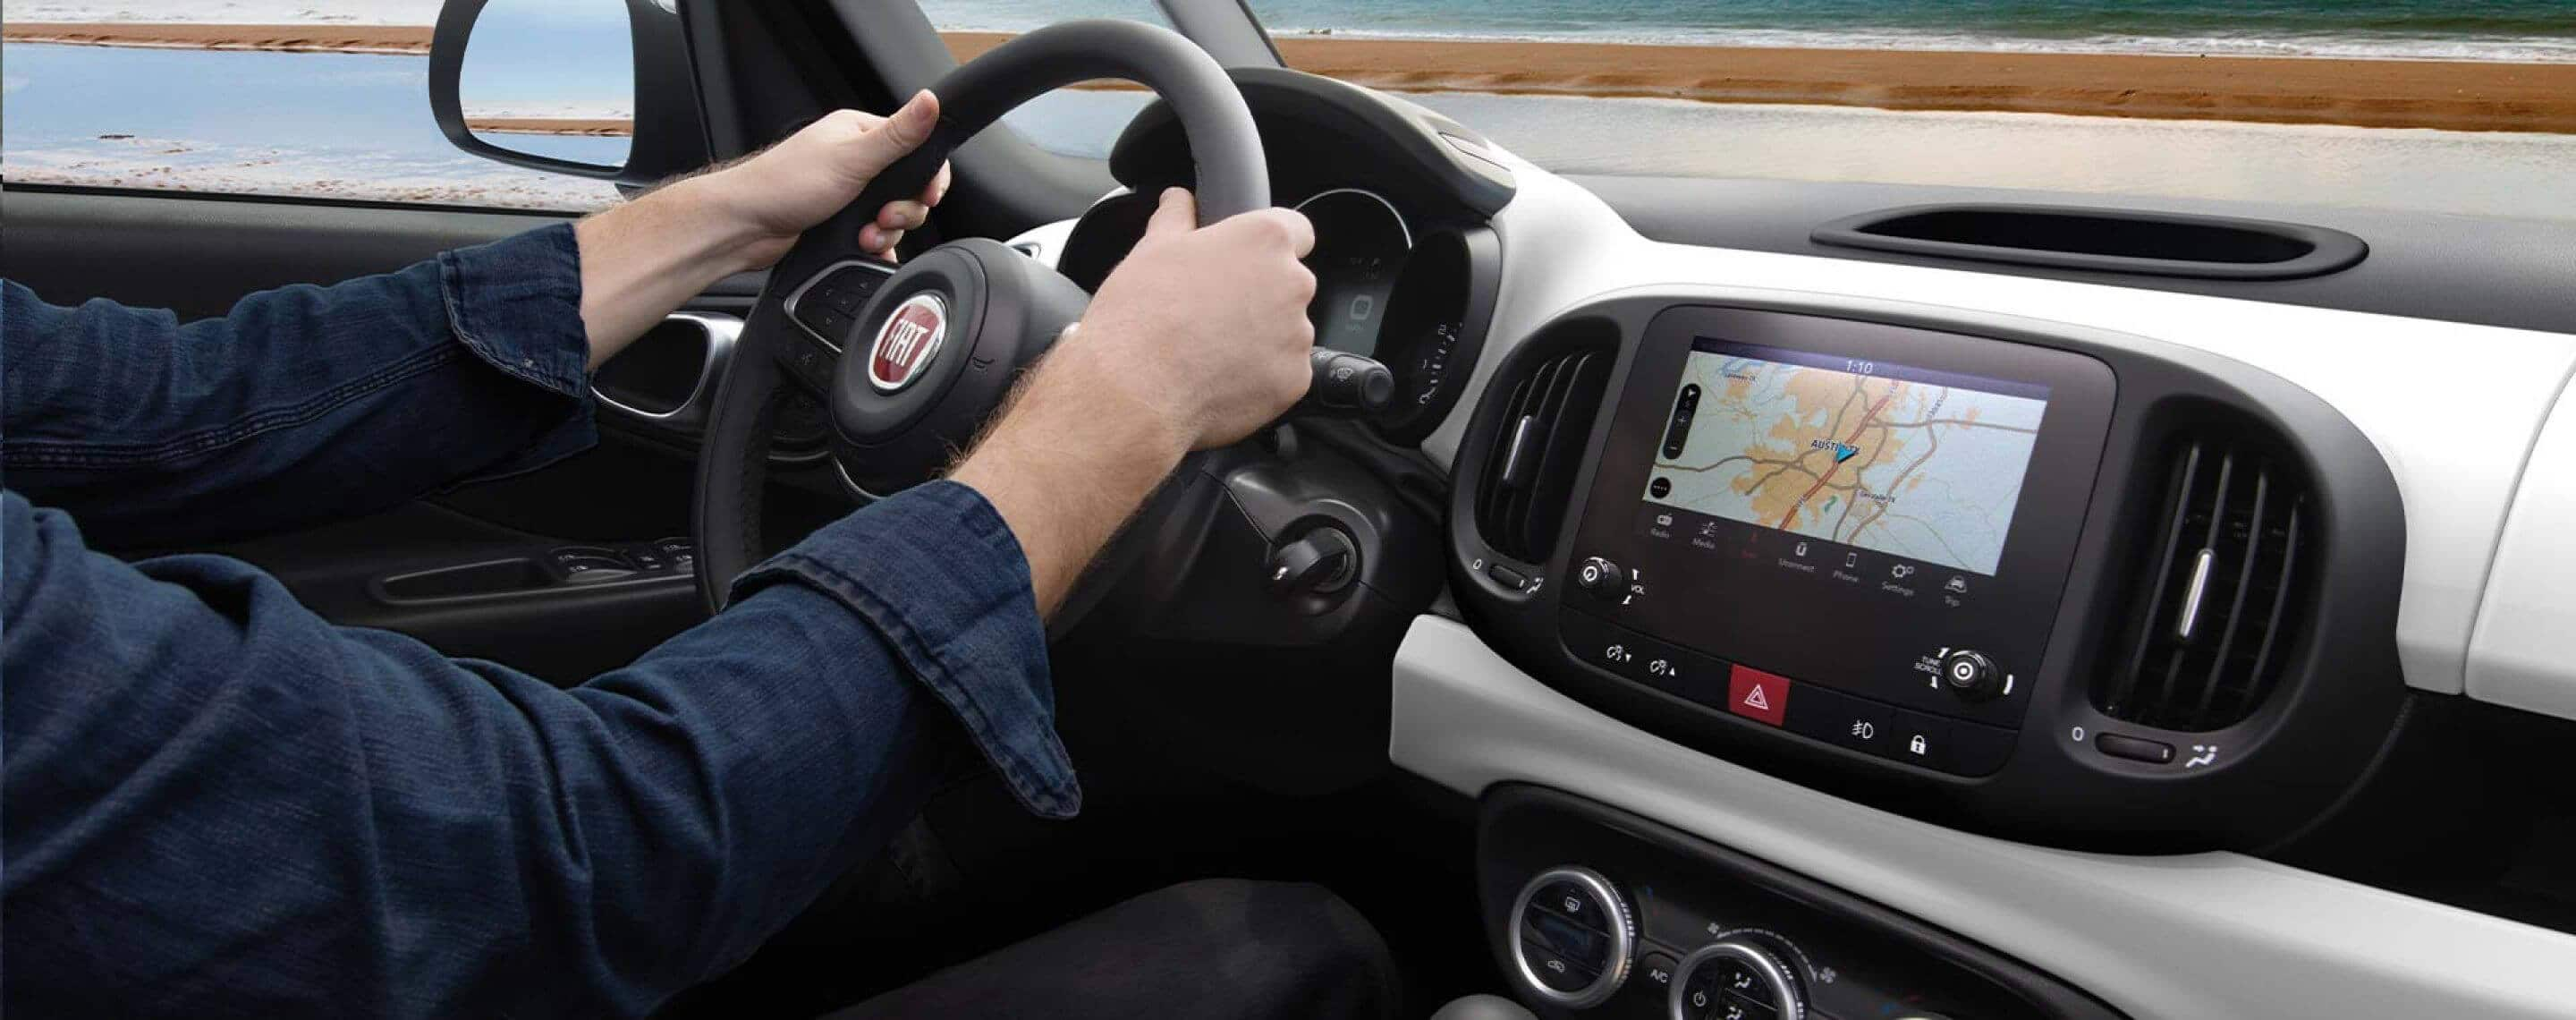 A driver with his hands on the wheel of a 2020 Fiat 500L Trekking as the Uconnect touchscreen navigation system displays a route map.